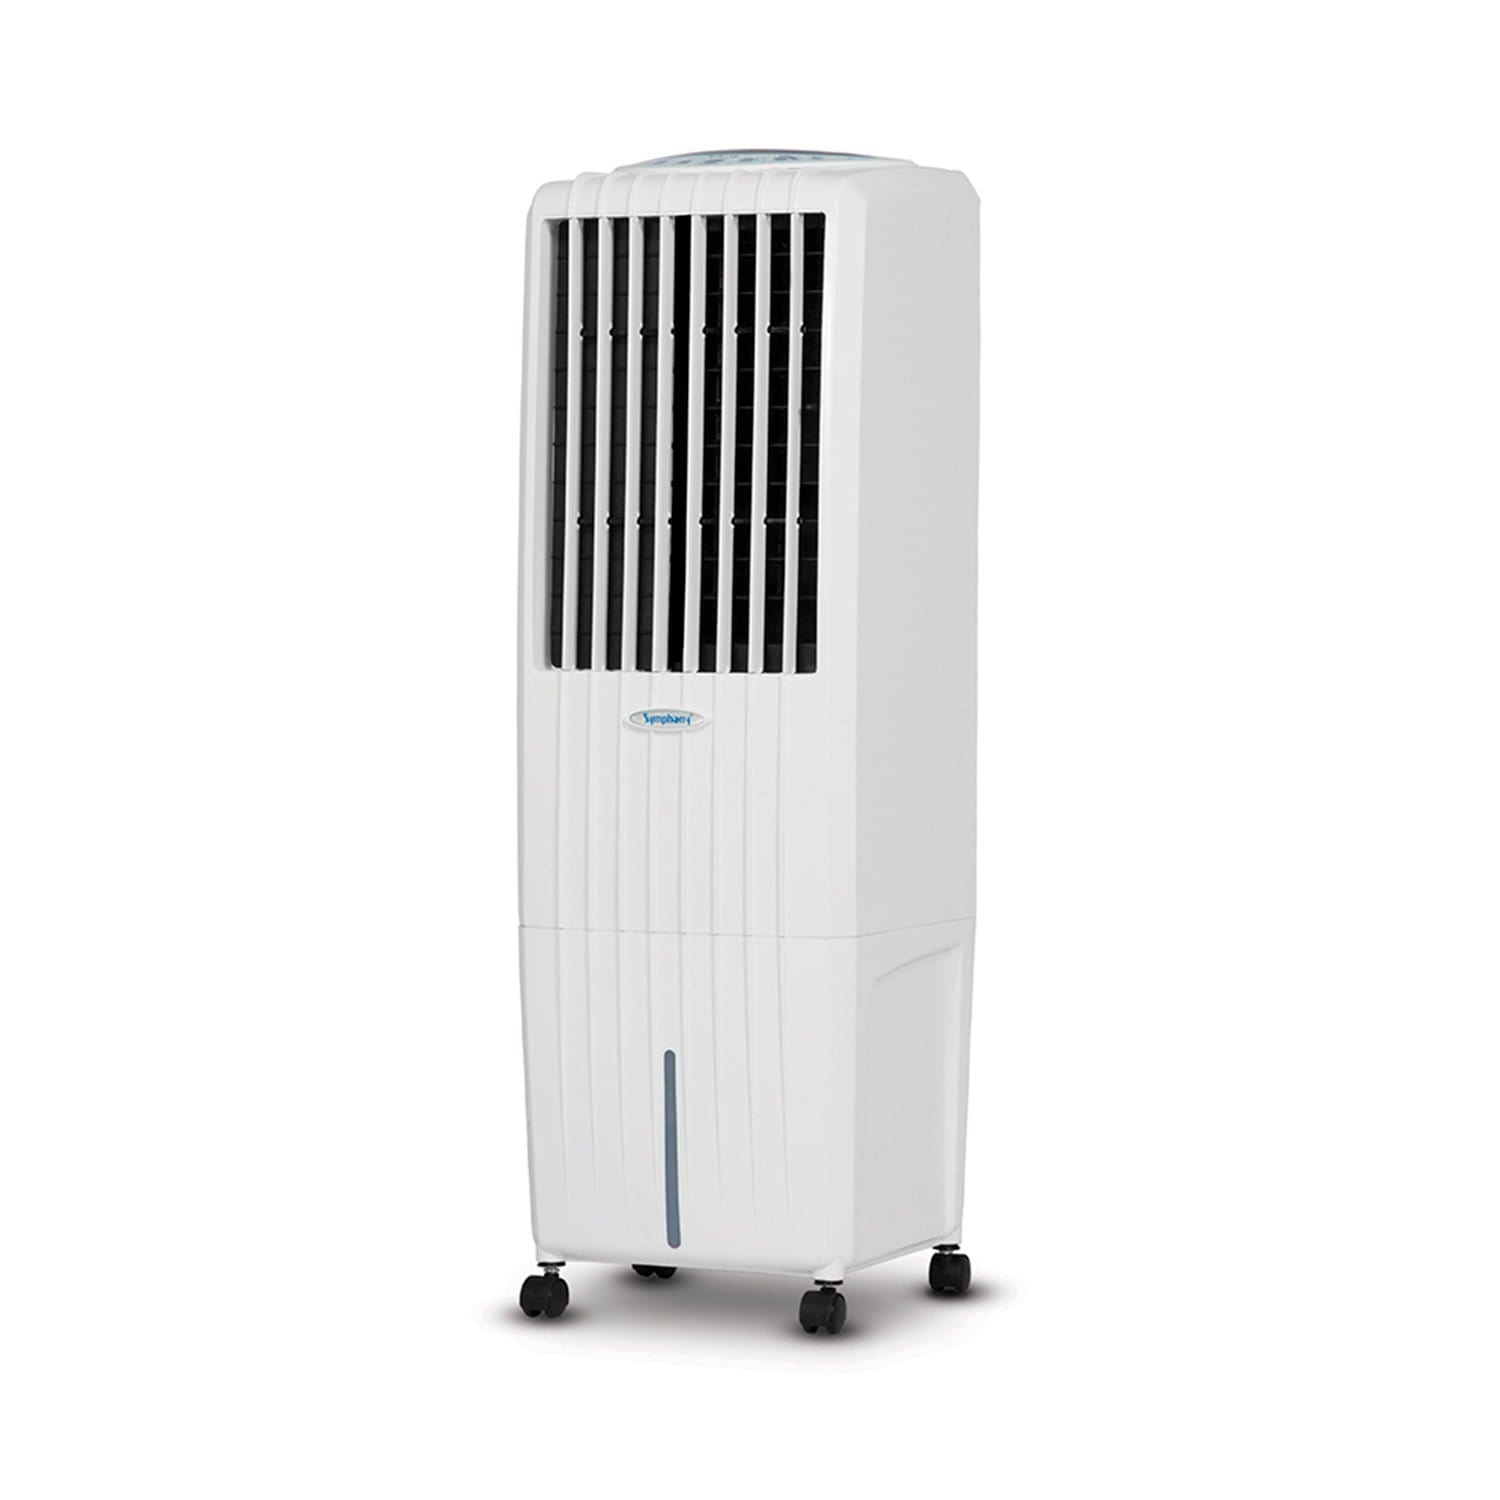 Symphony Diet 22i 22 Litre Air Cooler with Remote Control (White) 724830293172